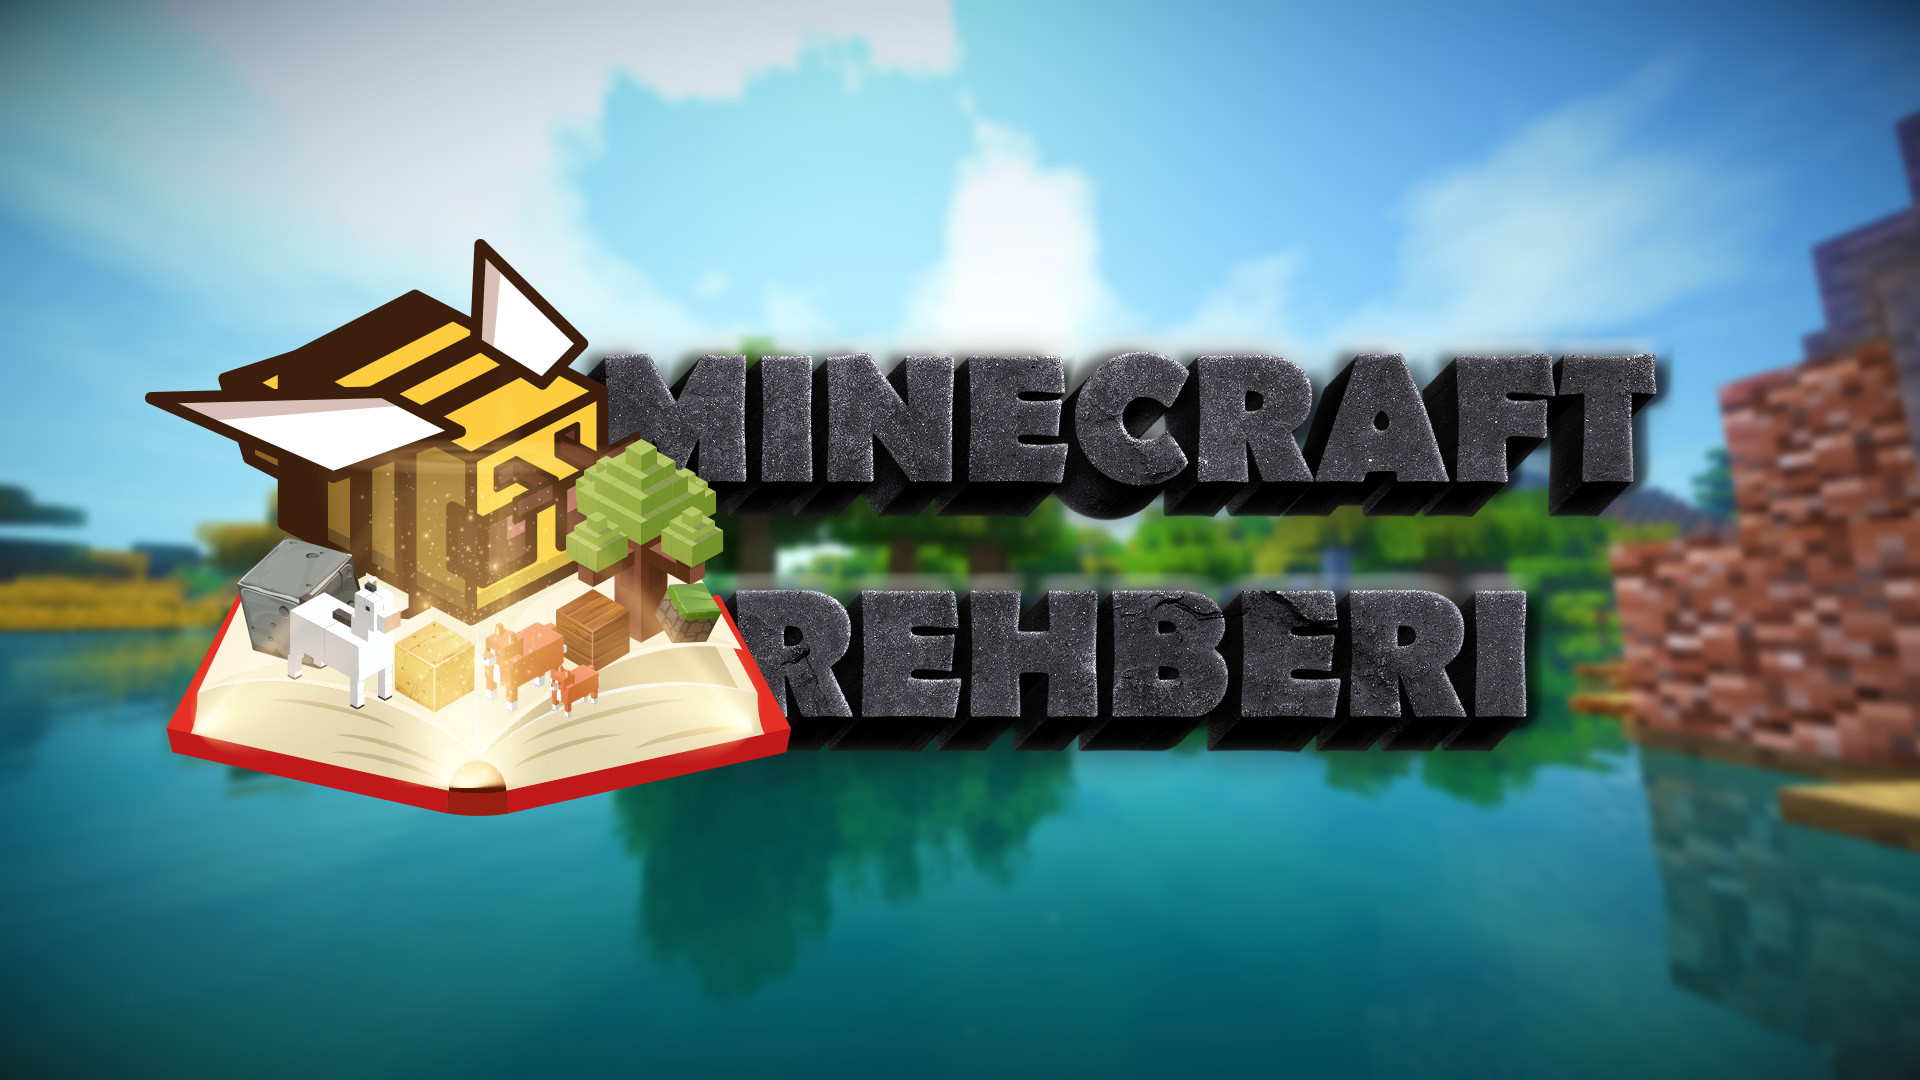 Minecraft Rehberi | Minecraft Türk | Minecraft Forum | Minecraft Server